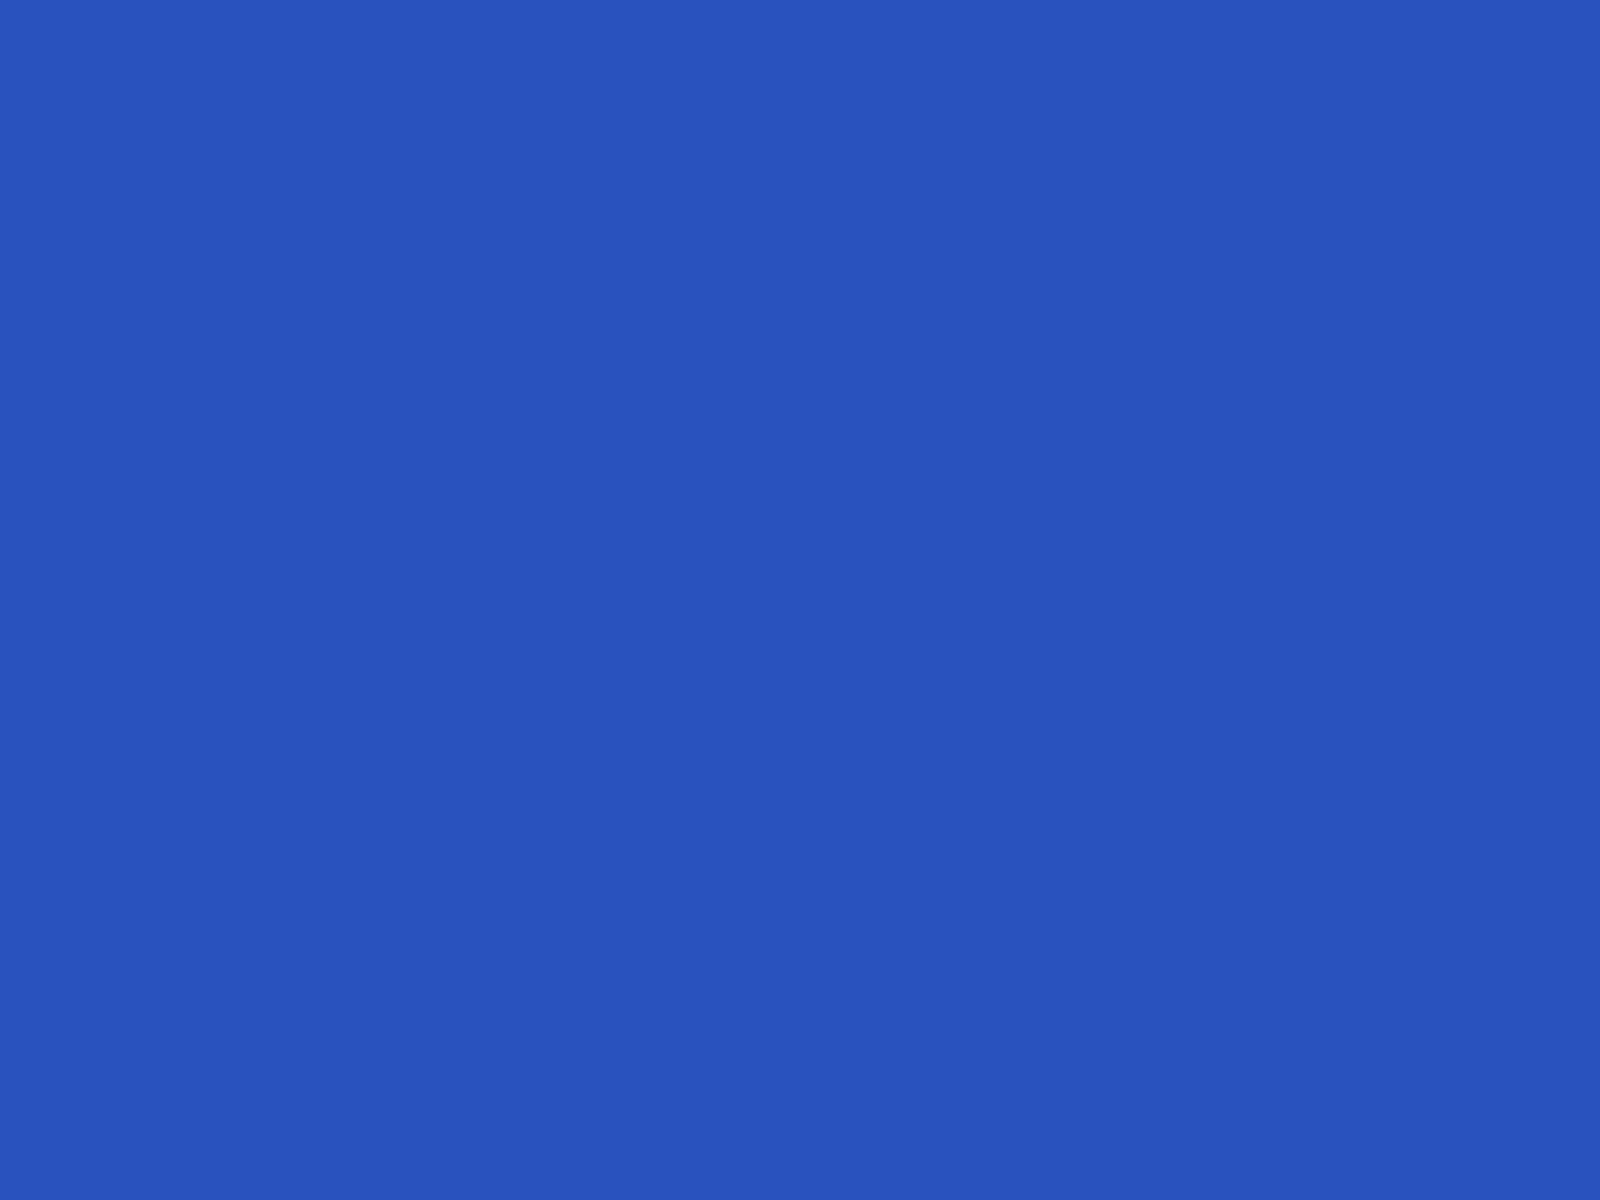 1600x1200 Cerulean Blue Solid Color Background